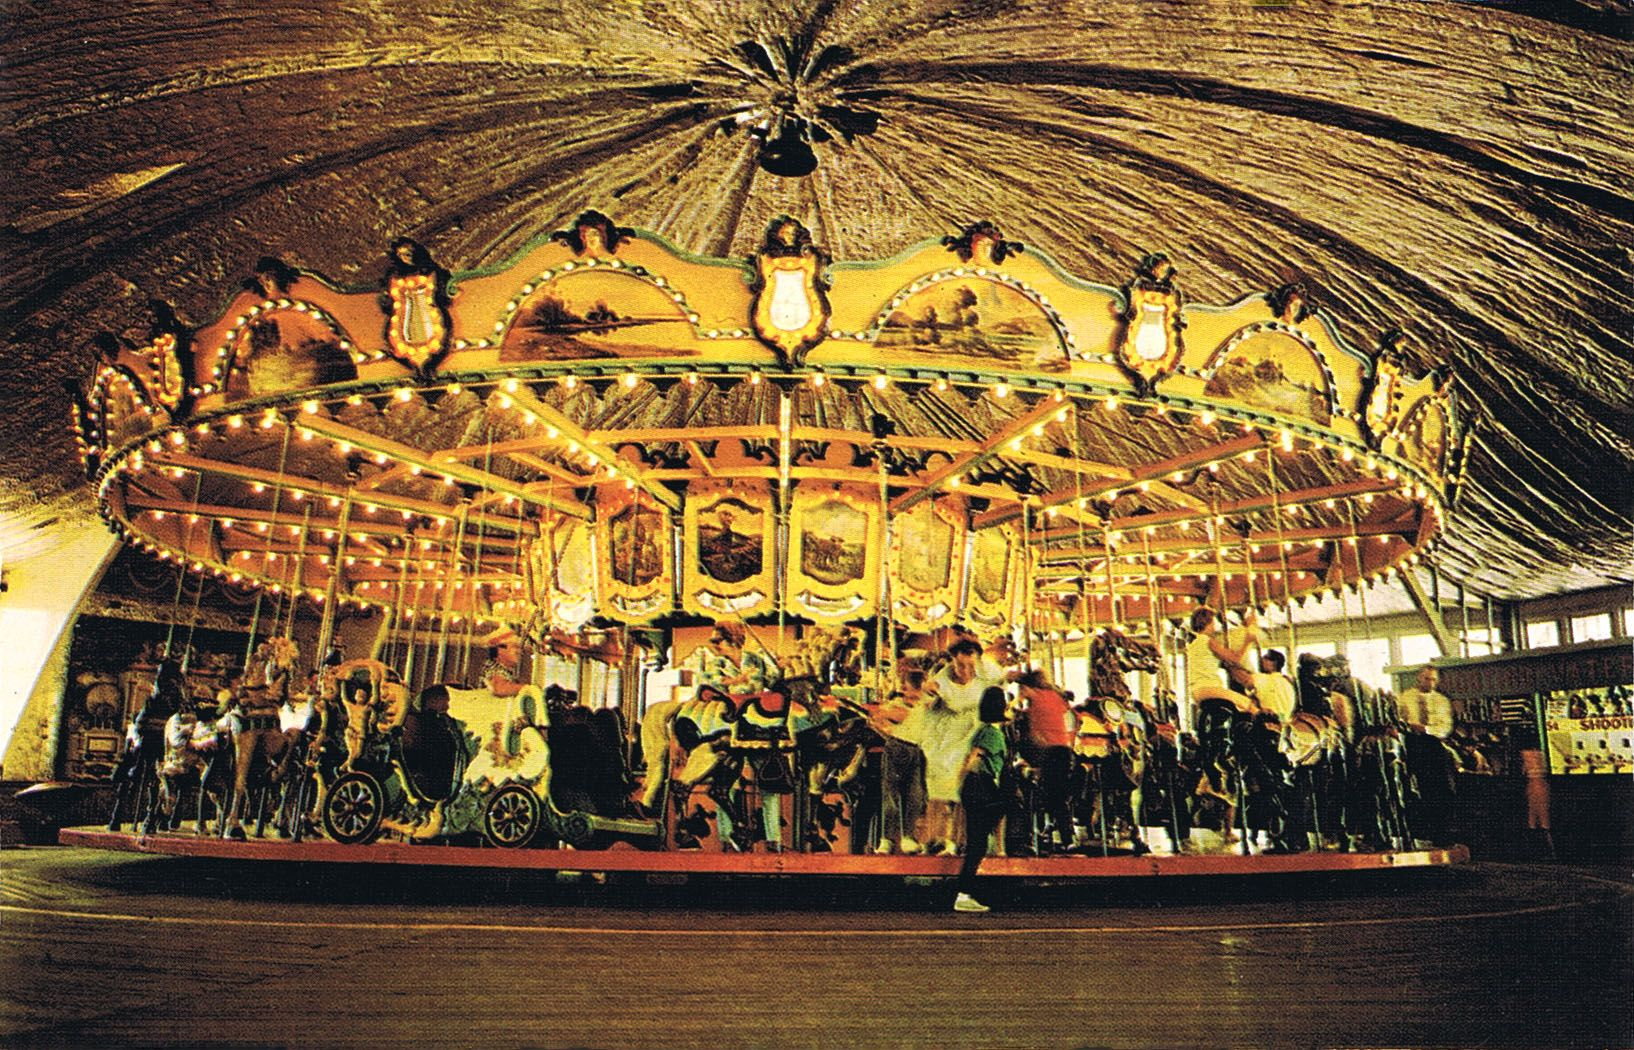 An early 1960s postcard view of the Carousel at Dorney Park in ...